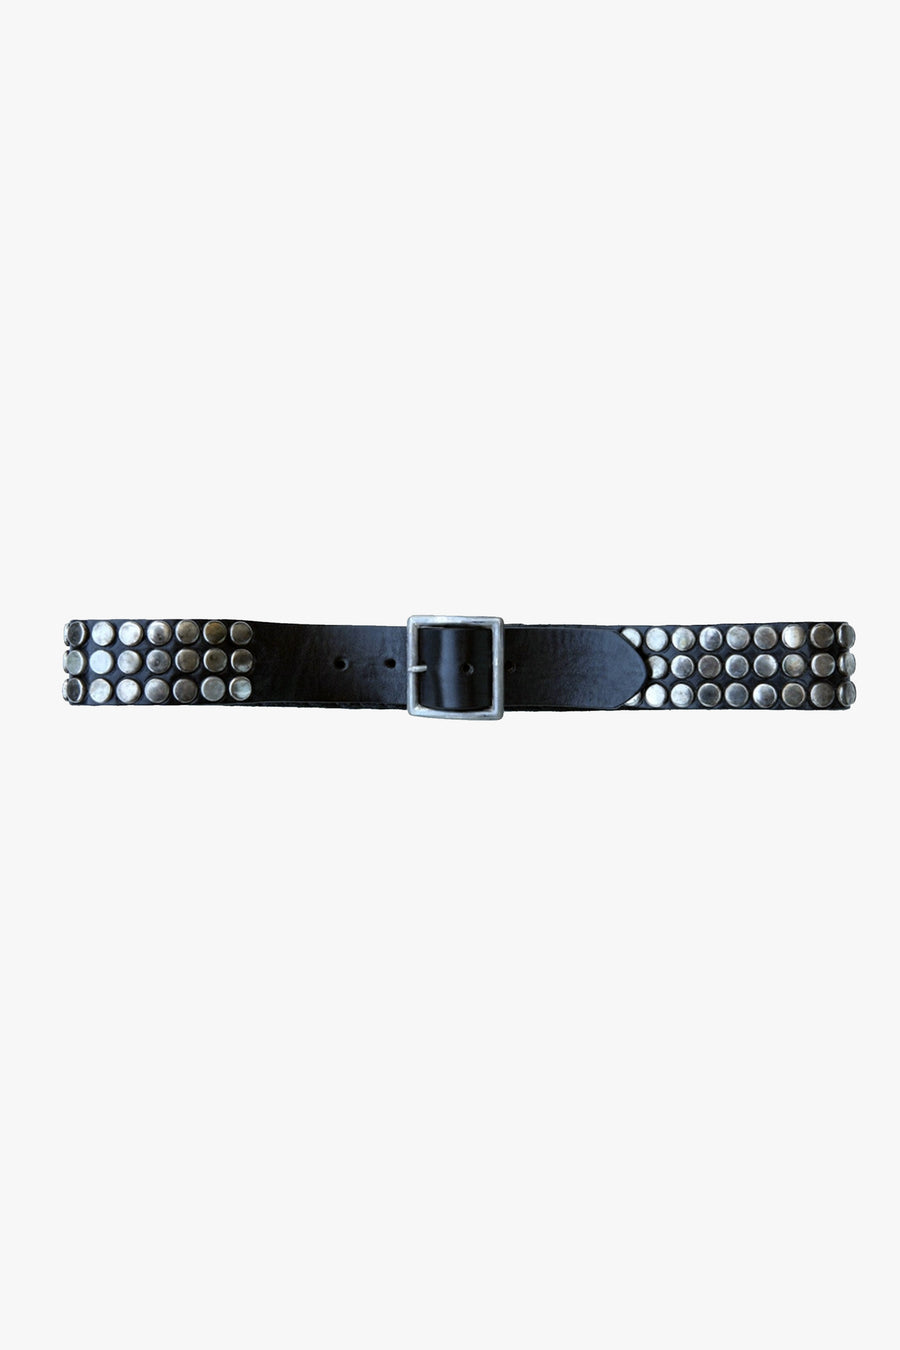 JUDAS' KISS BELT - Kelly Cole USA